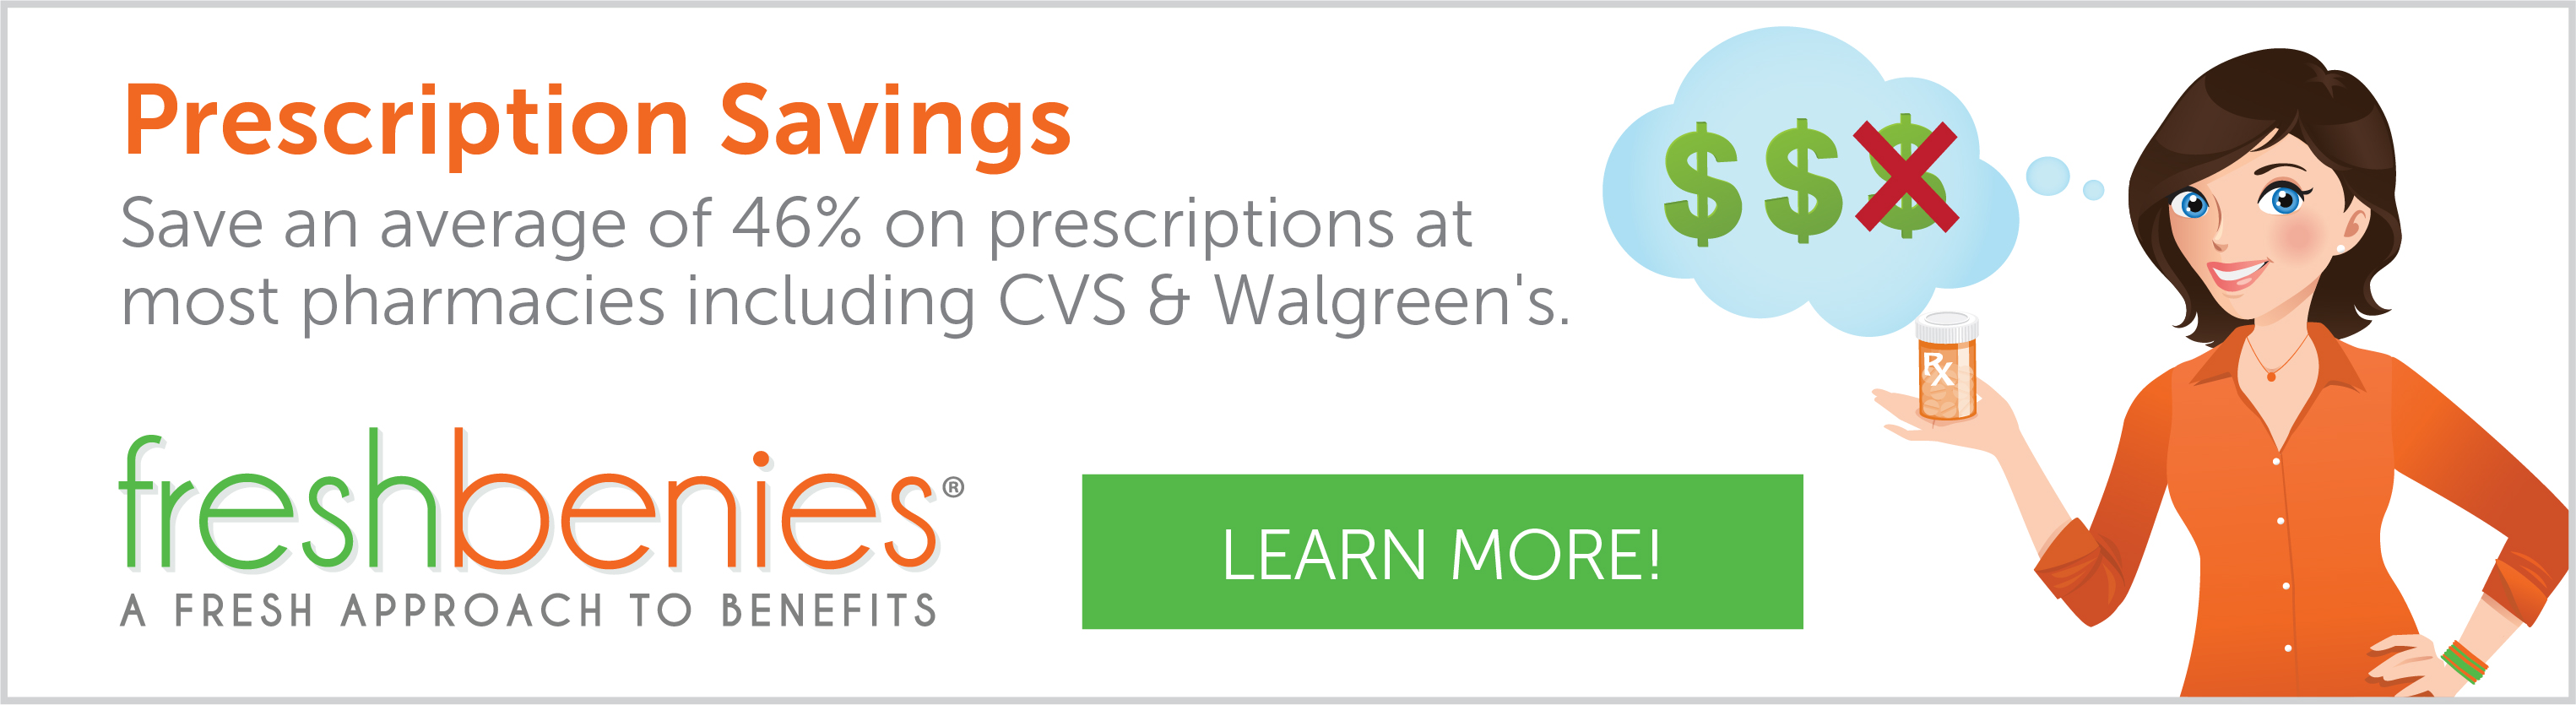 Prescription Savings